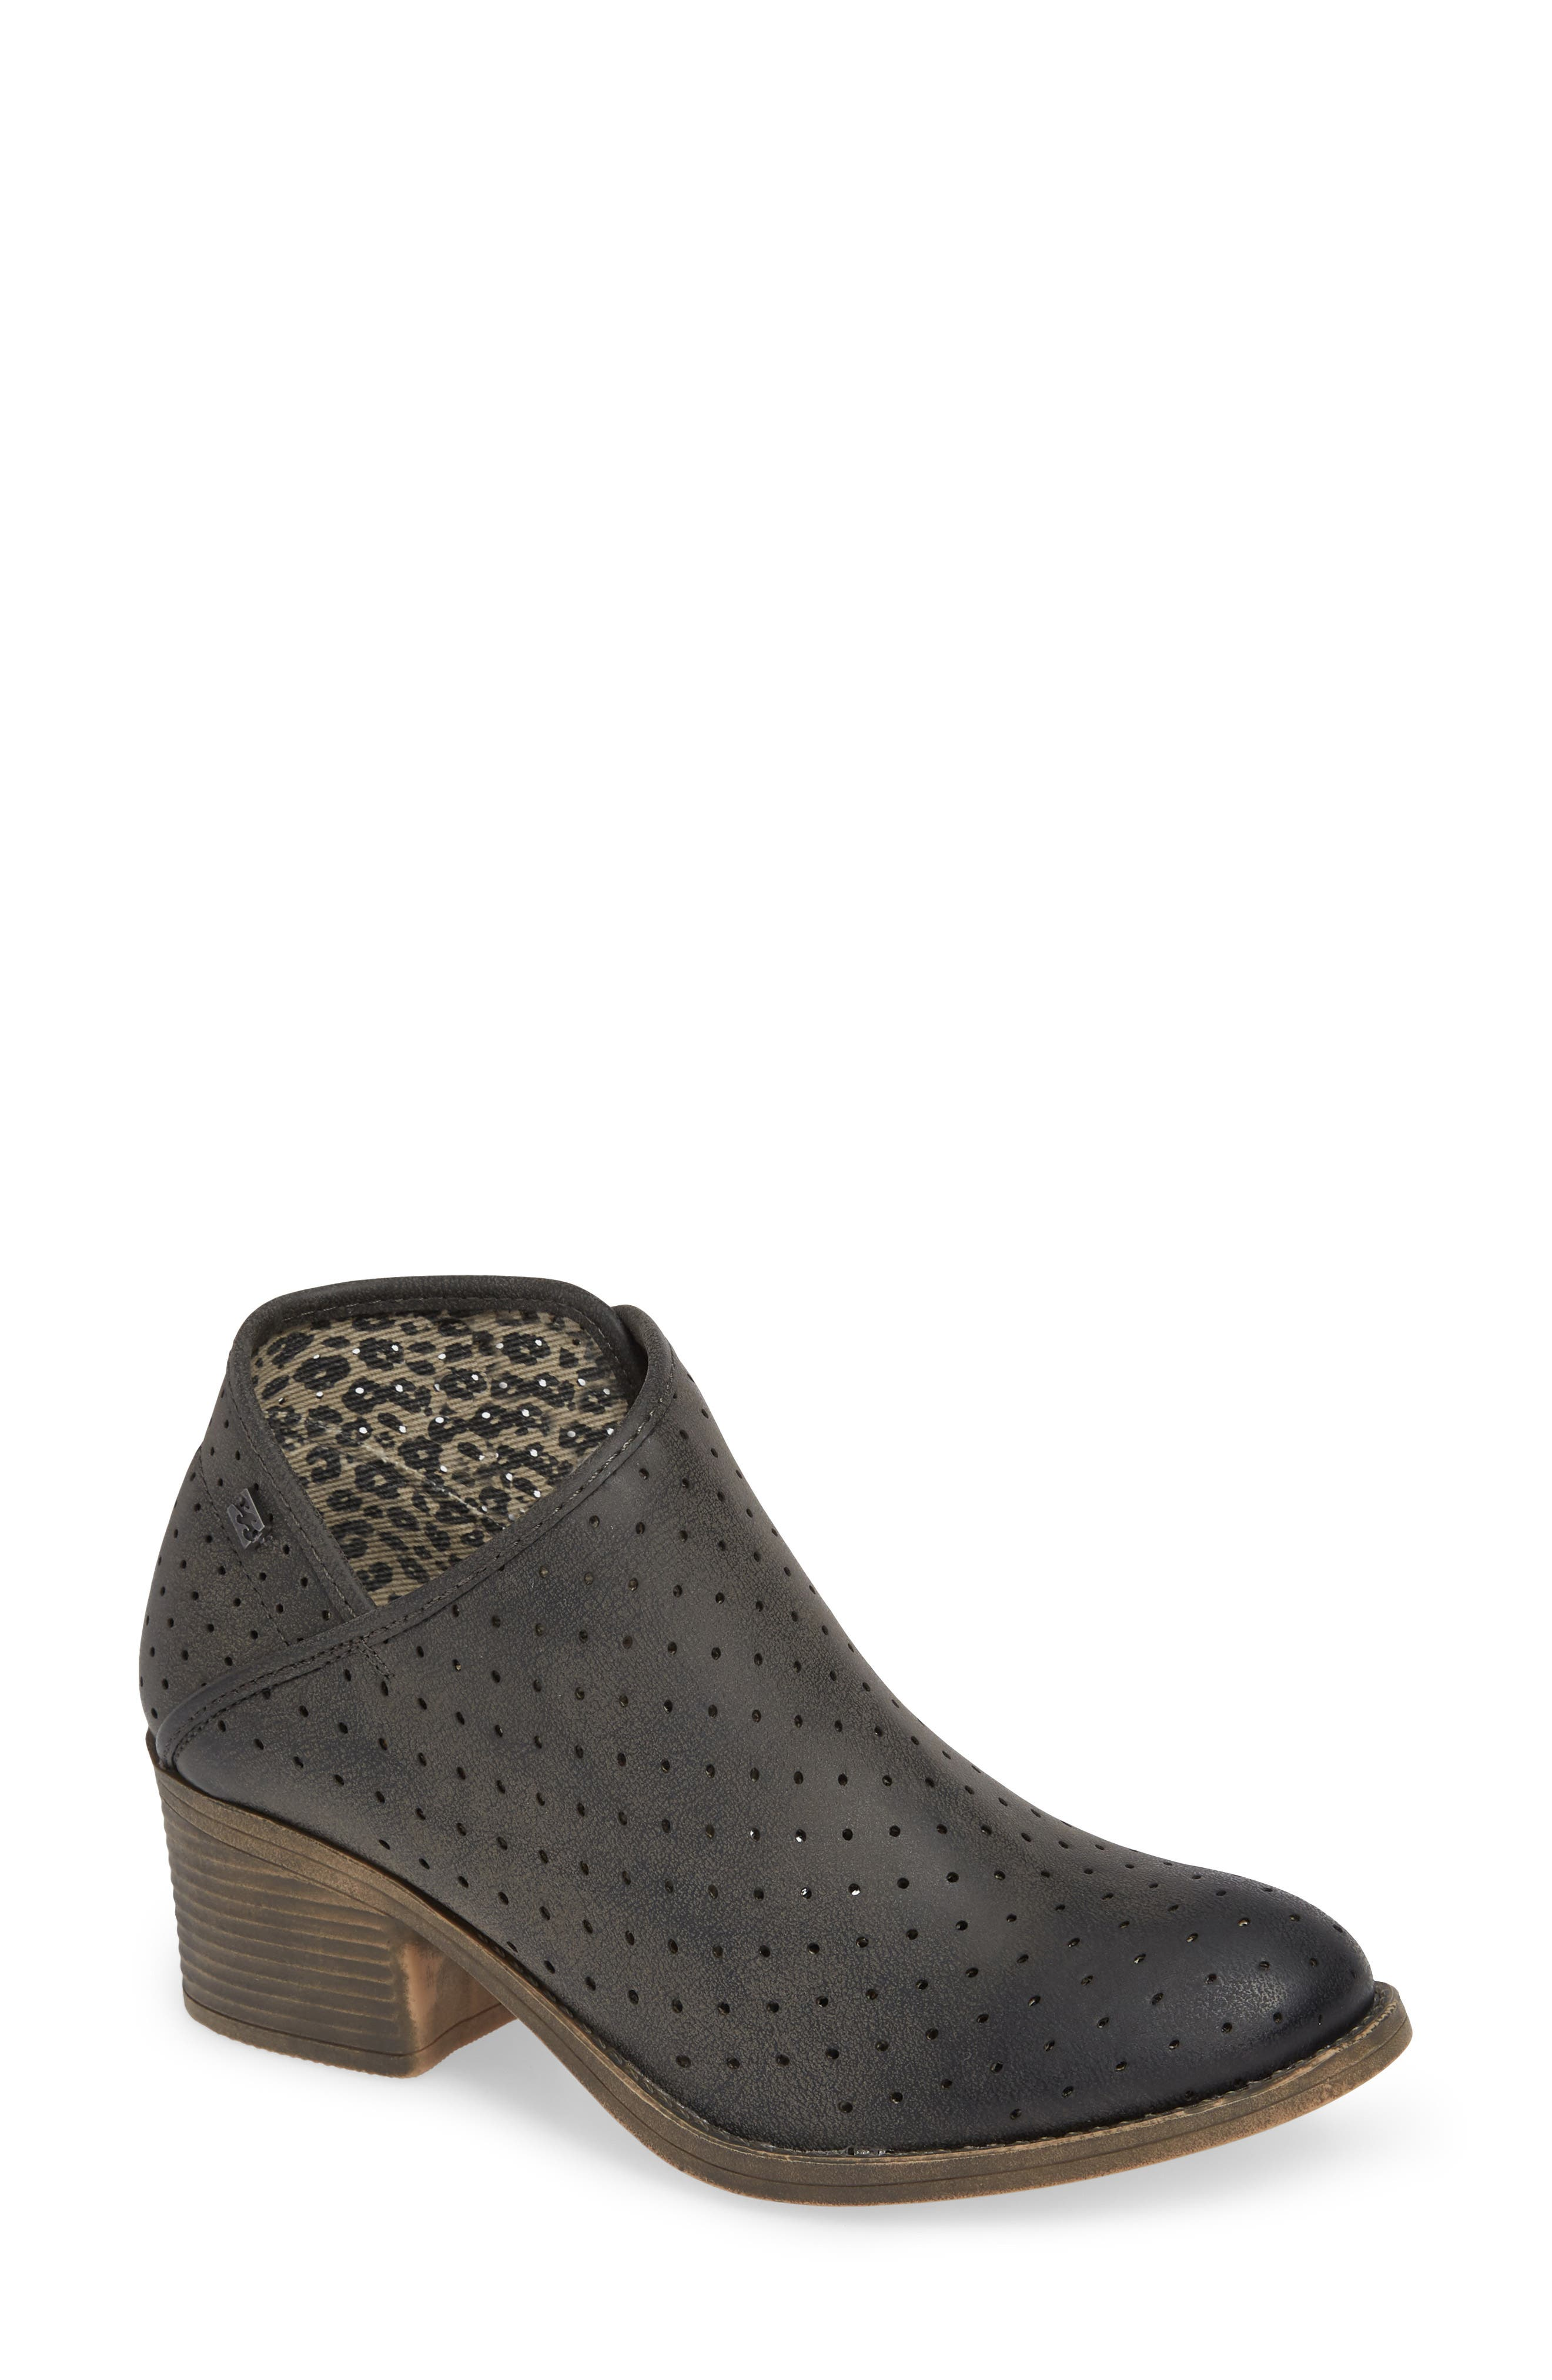 Sunbeams Perforated Bootie,                         Main,                         color, 025